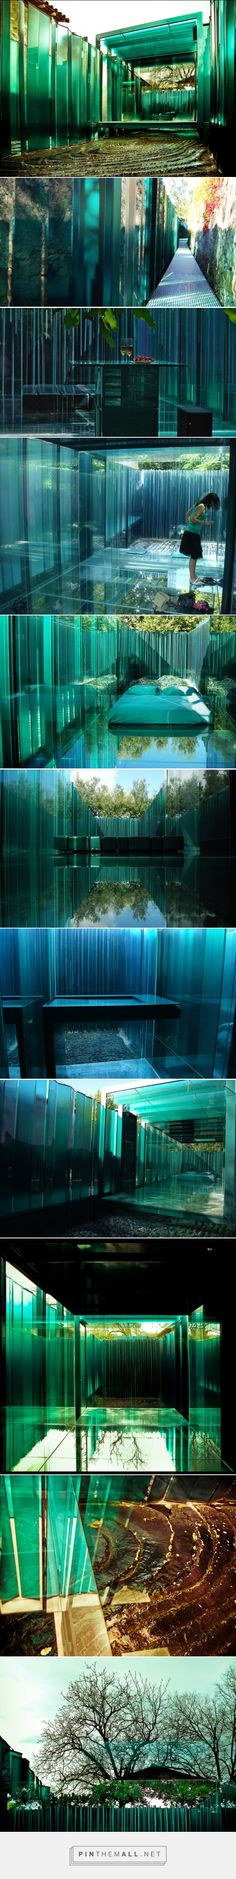 Amazing Glass Hotel: Les Cols Pavellons - Olot, Spain | DesignRulz... - a grouped images picture - Pin Them All